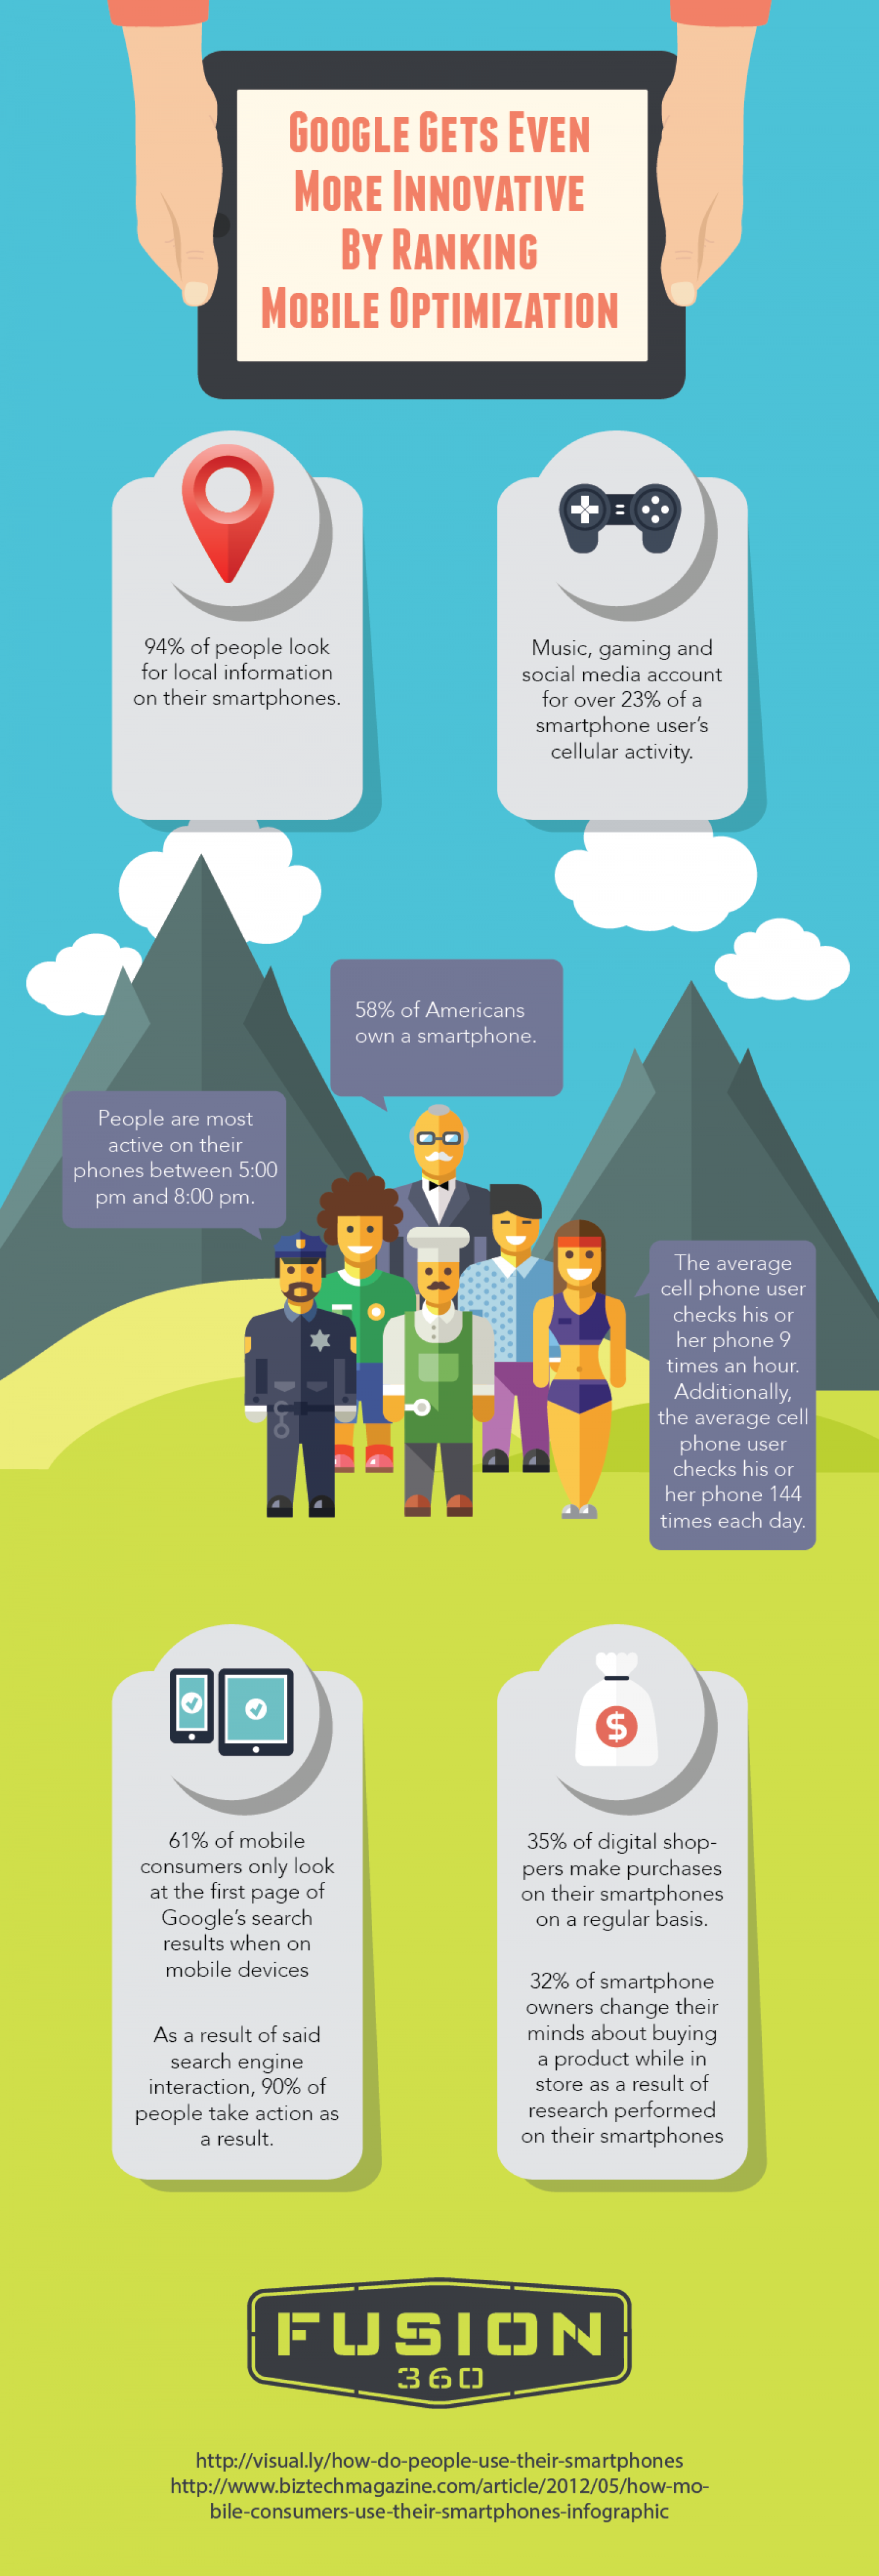 Google Gets Even More Innovative By Ranking Mobile Optimization Infographic